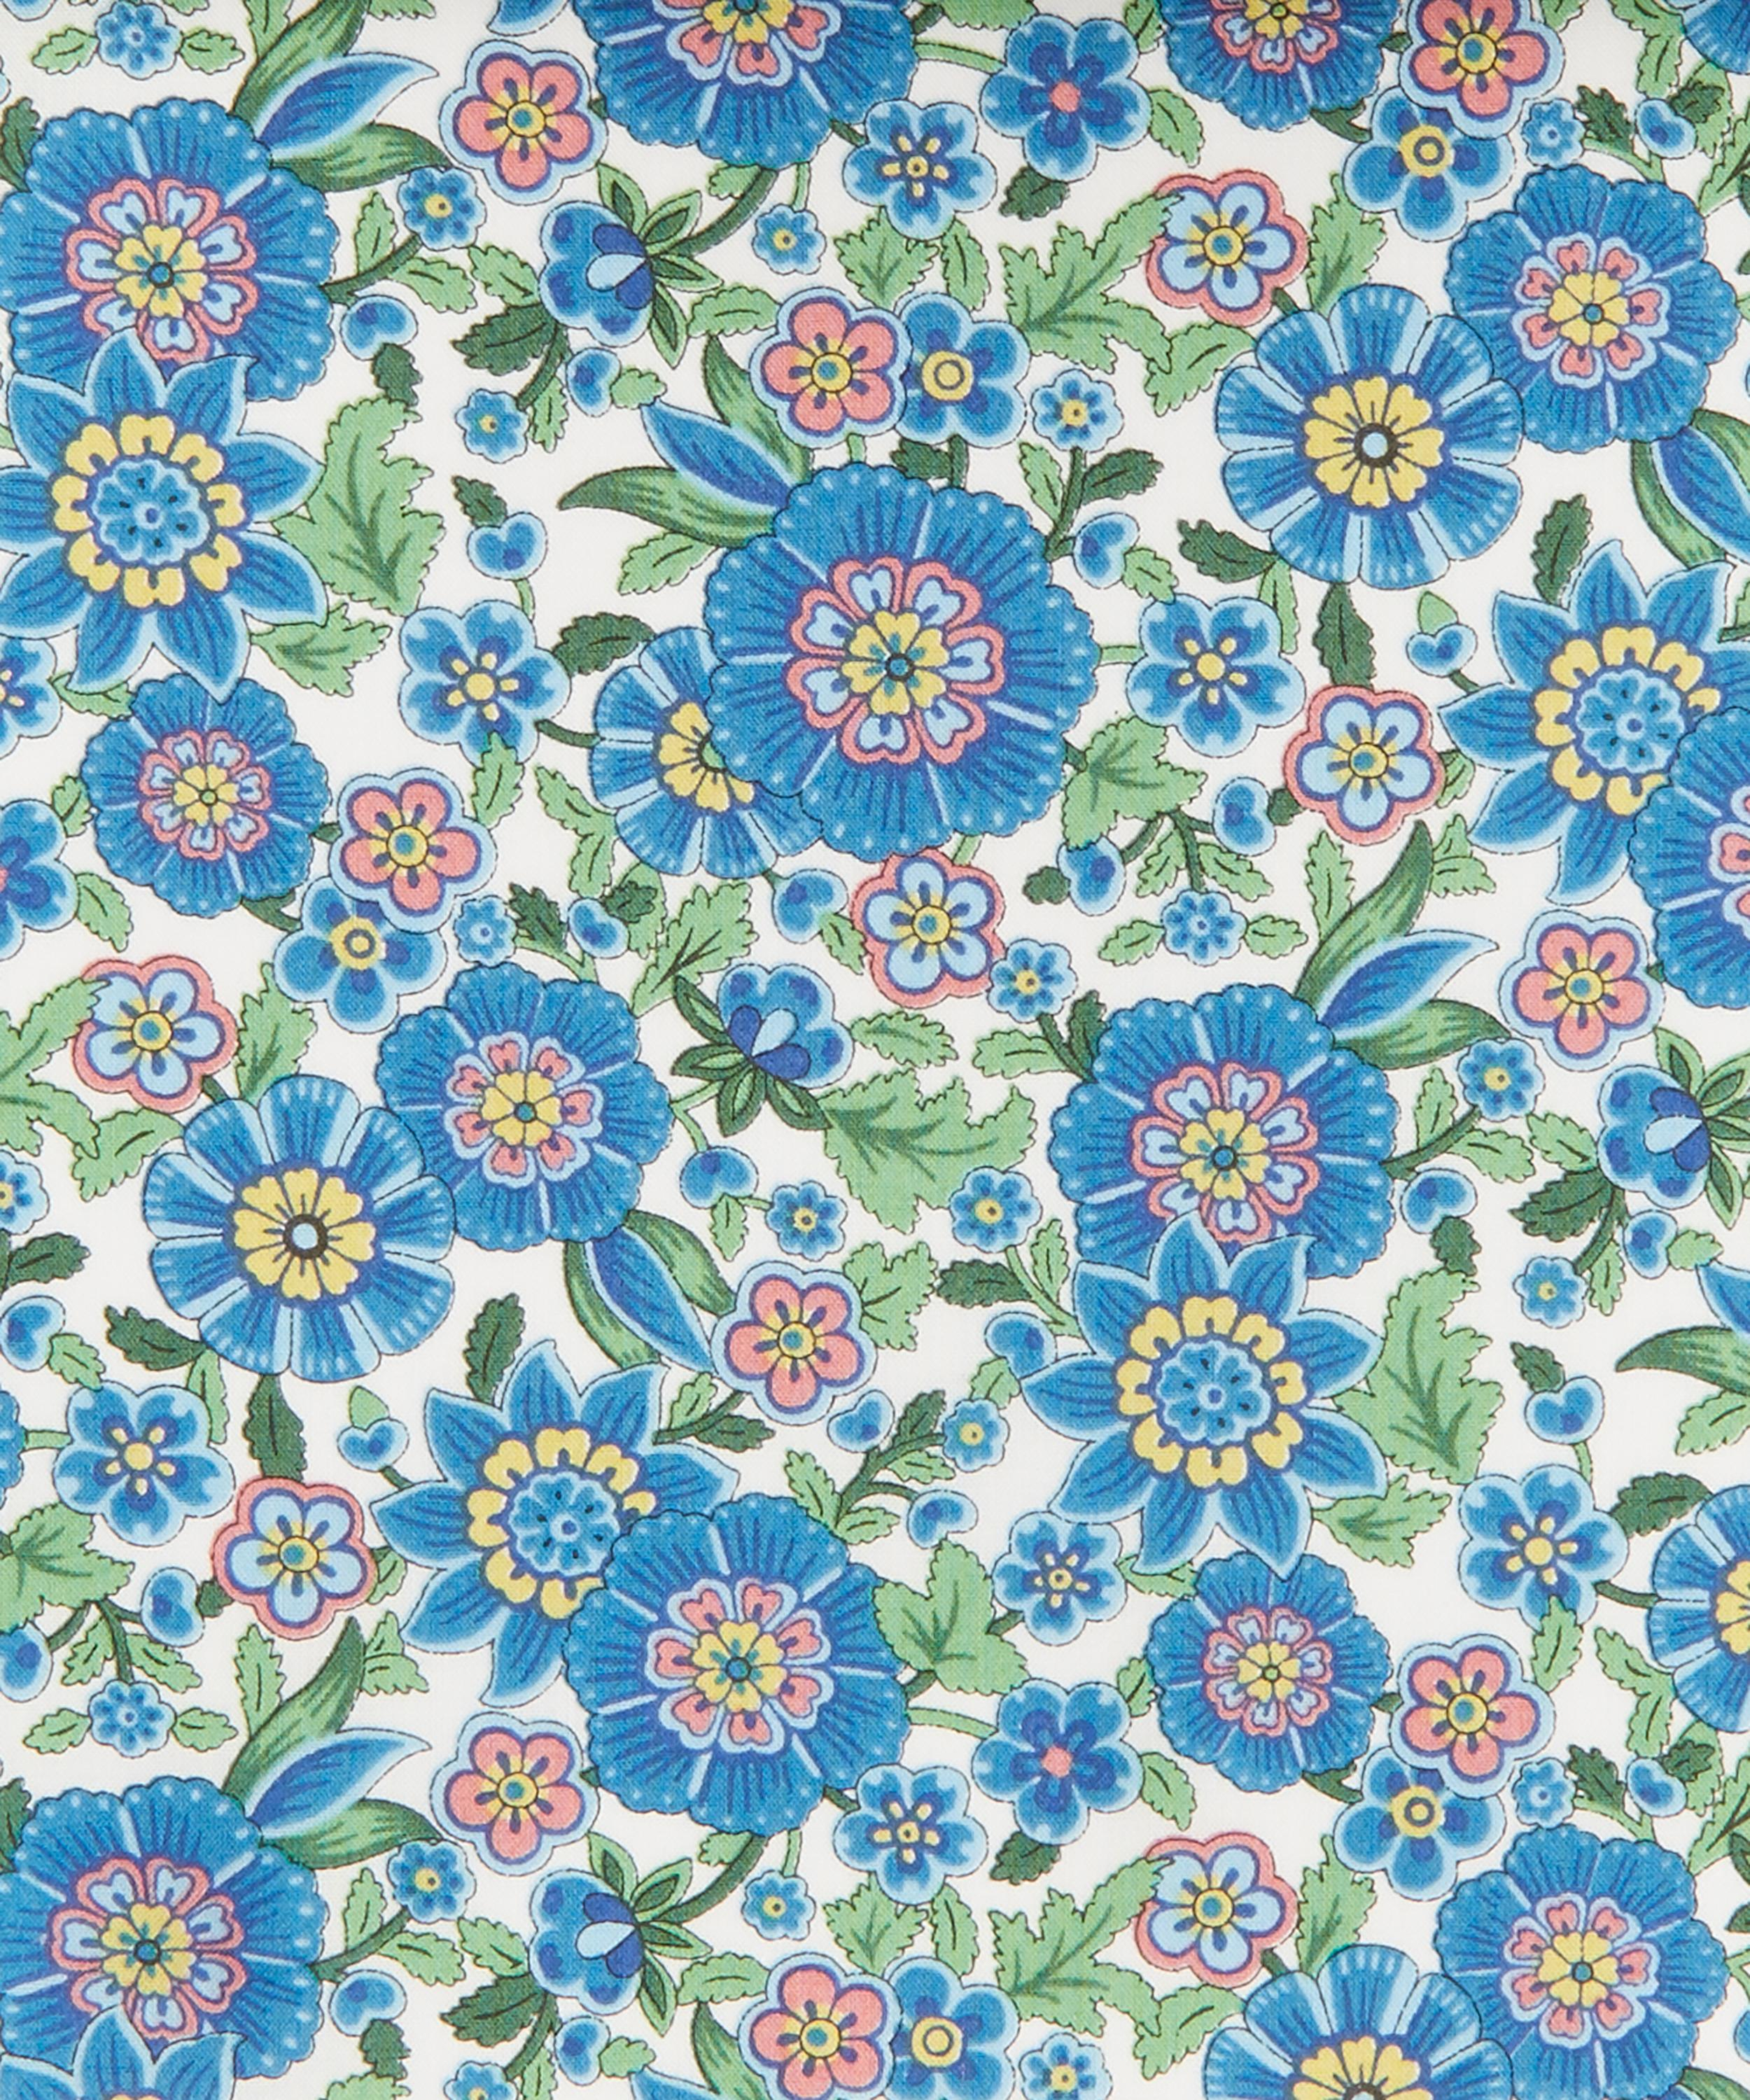 Blue floral Liberty fabric make your own knickers kit